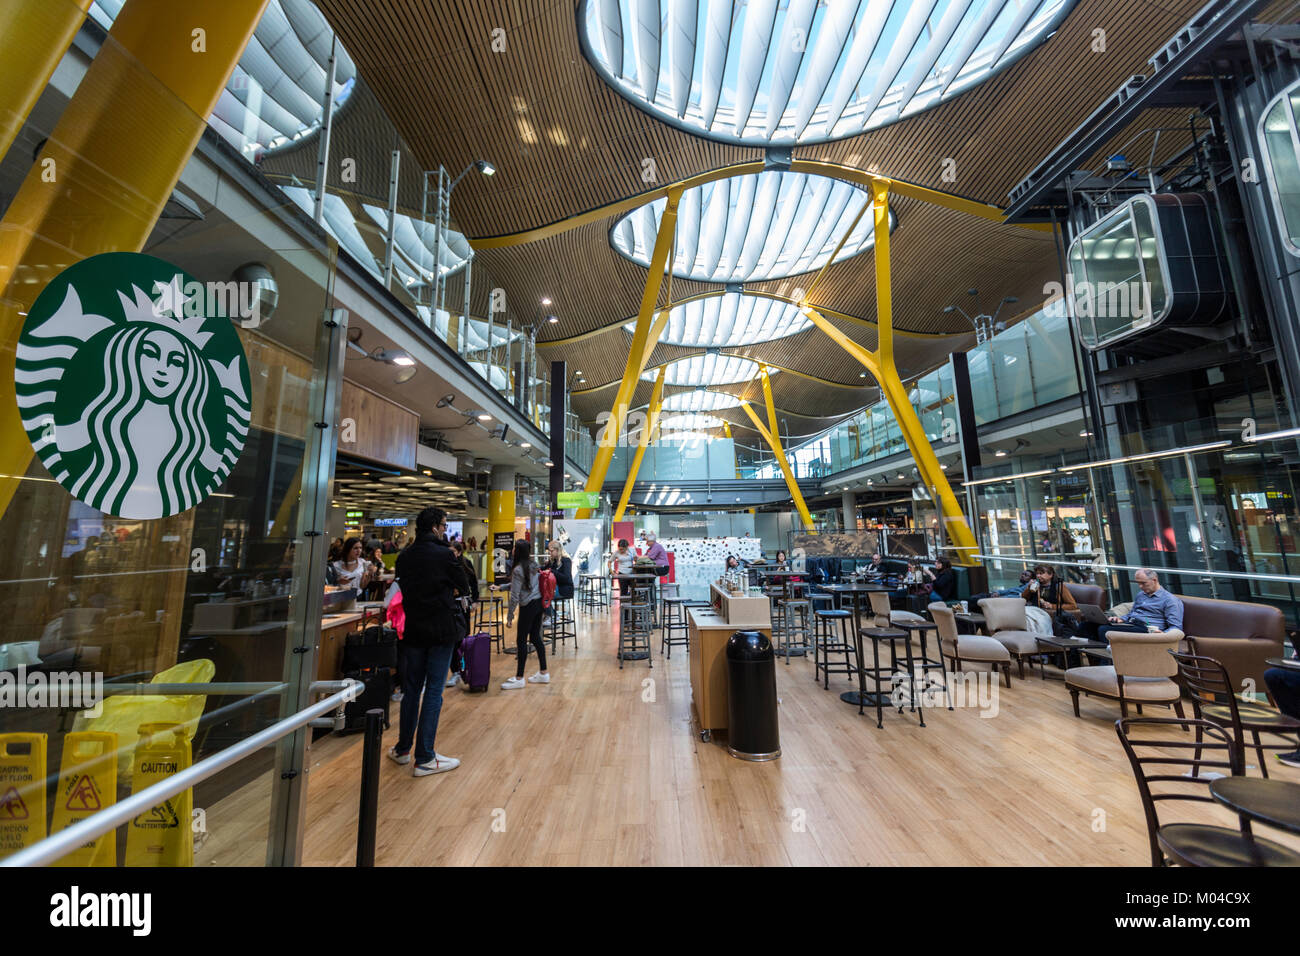 Starbucks cafe in Adolfo Suárez Madrid–Barajas Airport  terminals T4, designed by architects Antonio Lamela - Stock Image